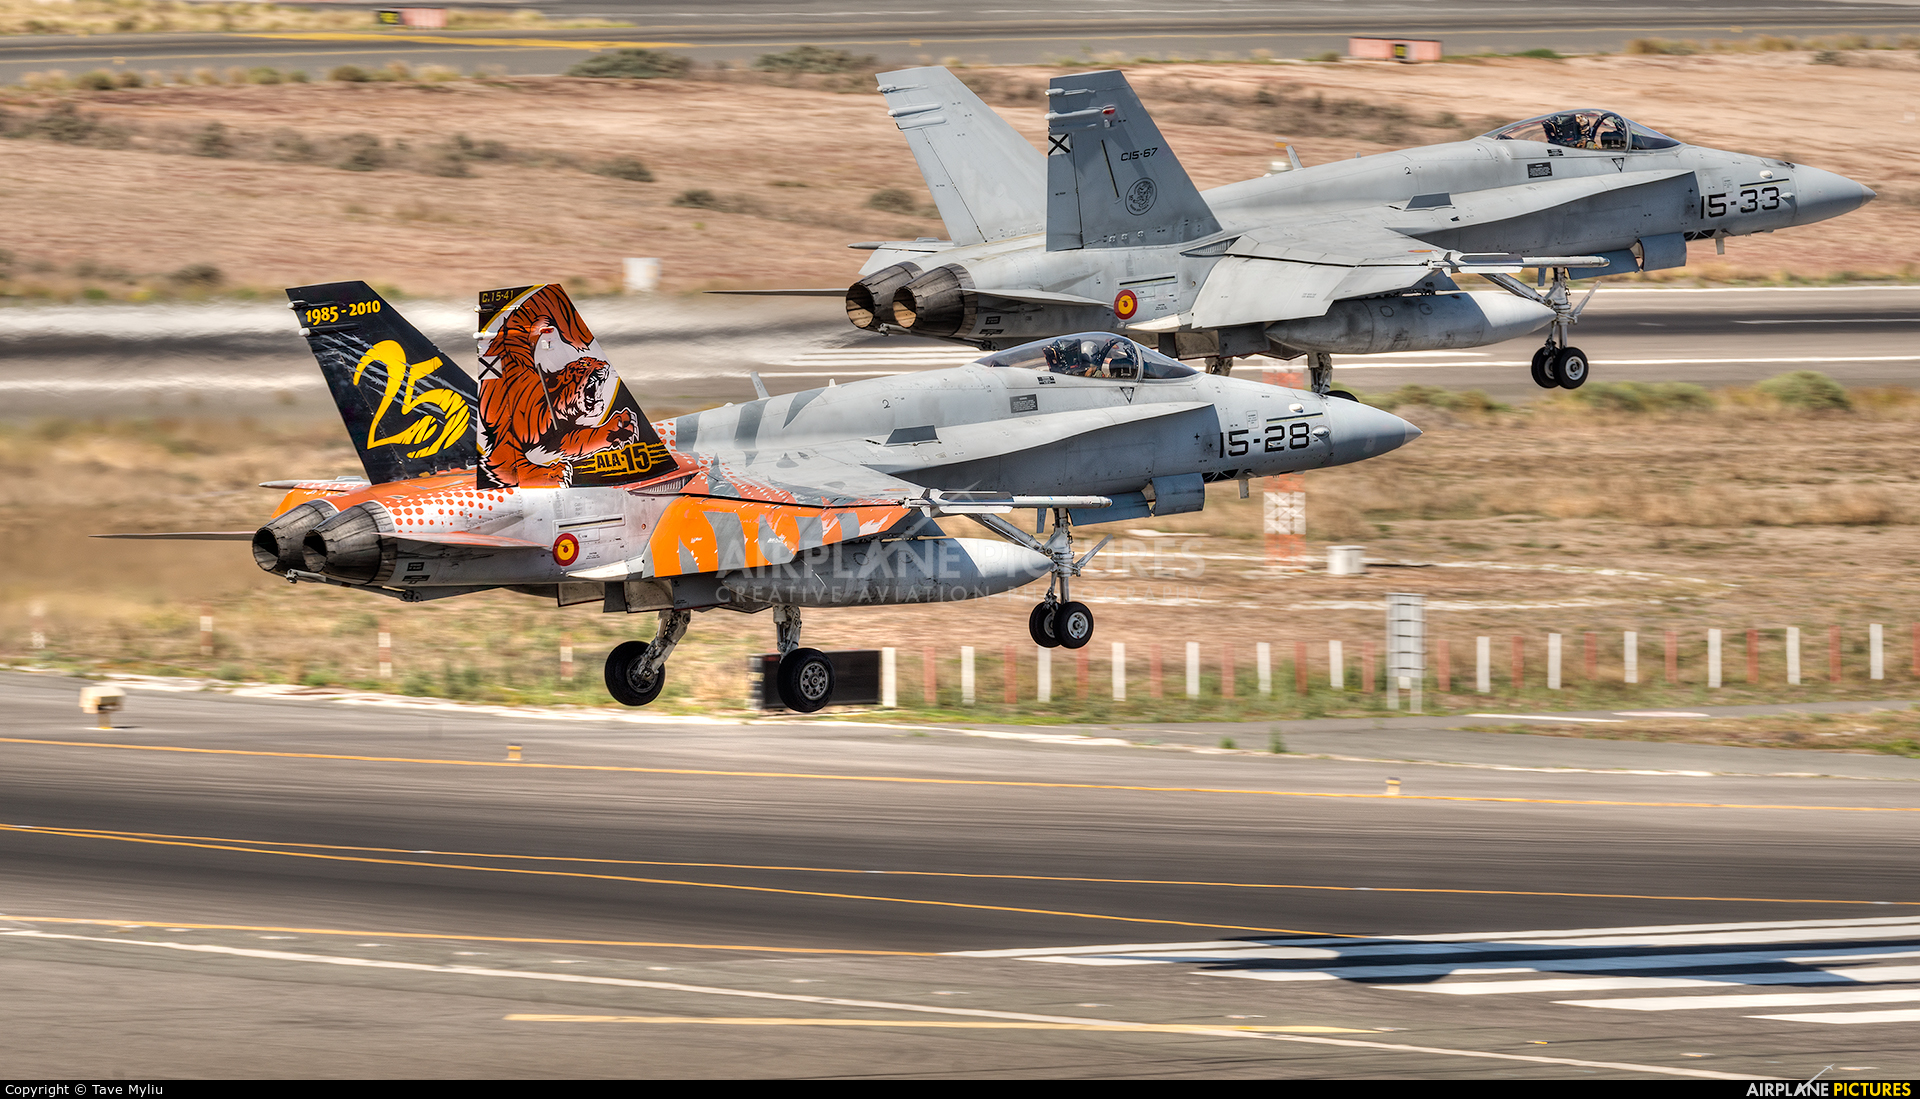 Spain - Air Force C.15-28 aircraft at Aeropuerto de Gran Canaria